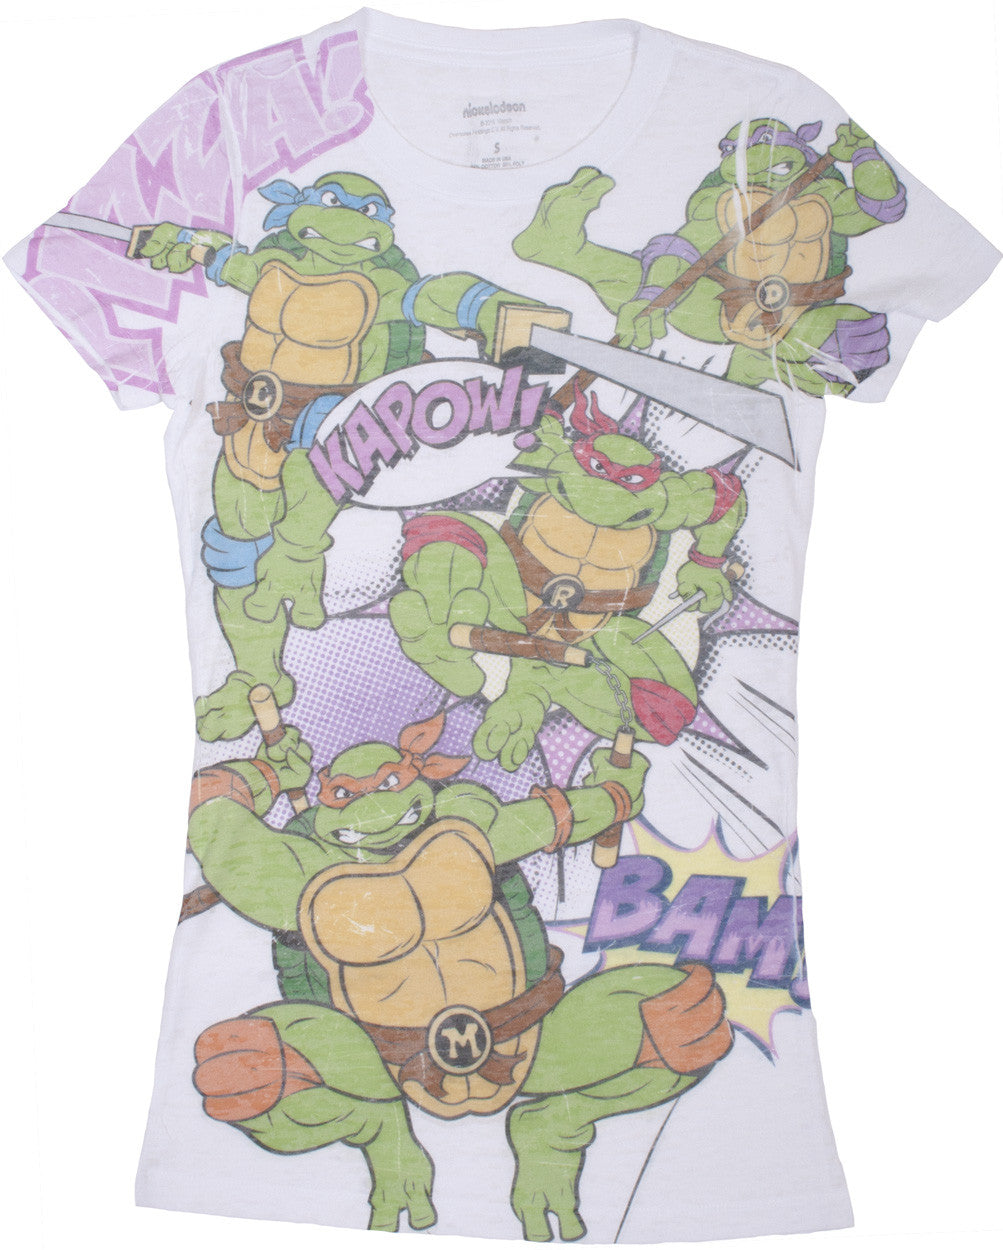 Teenage Mutant Ninja Turtles Comic T-Shirt - Junior